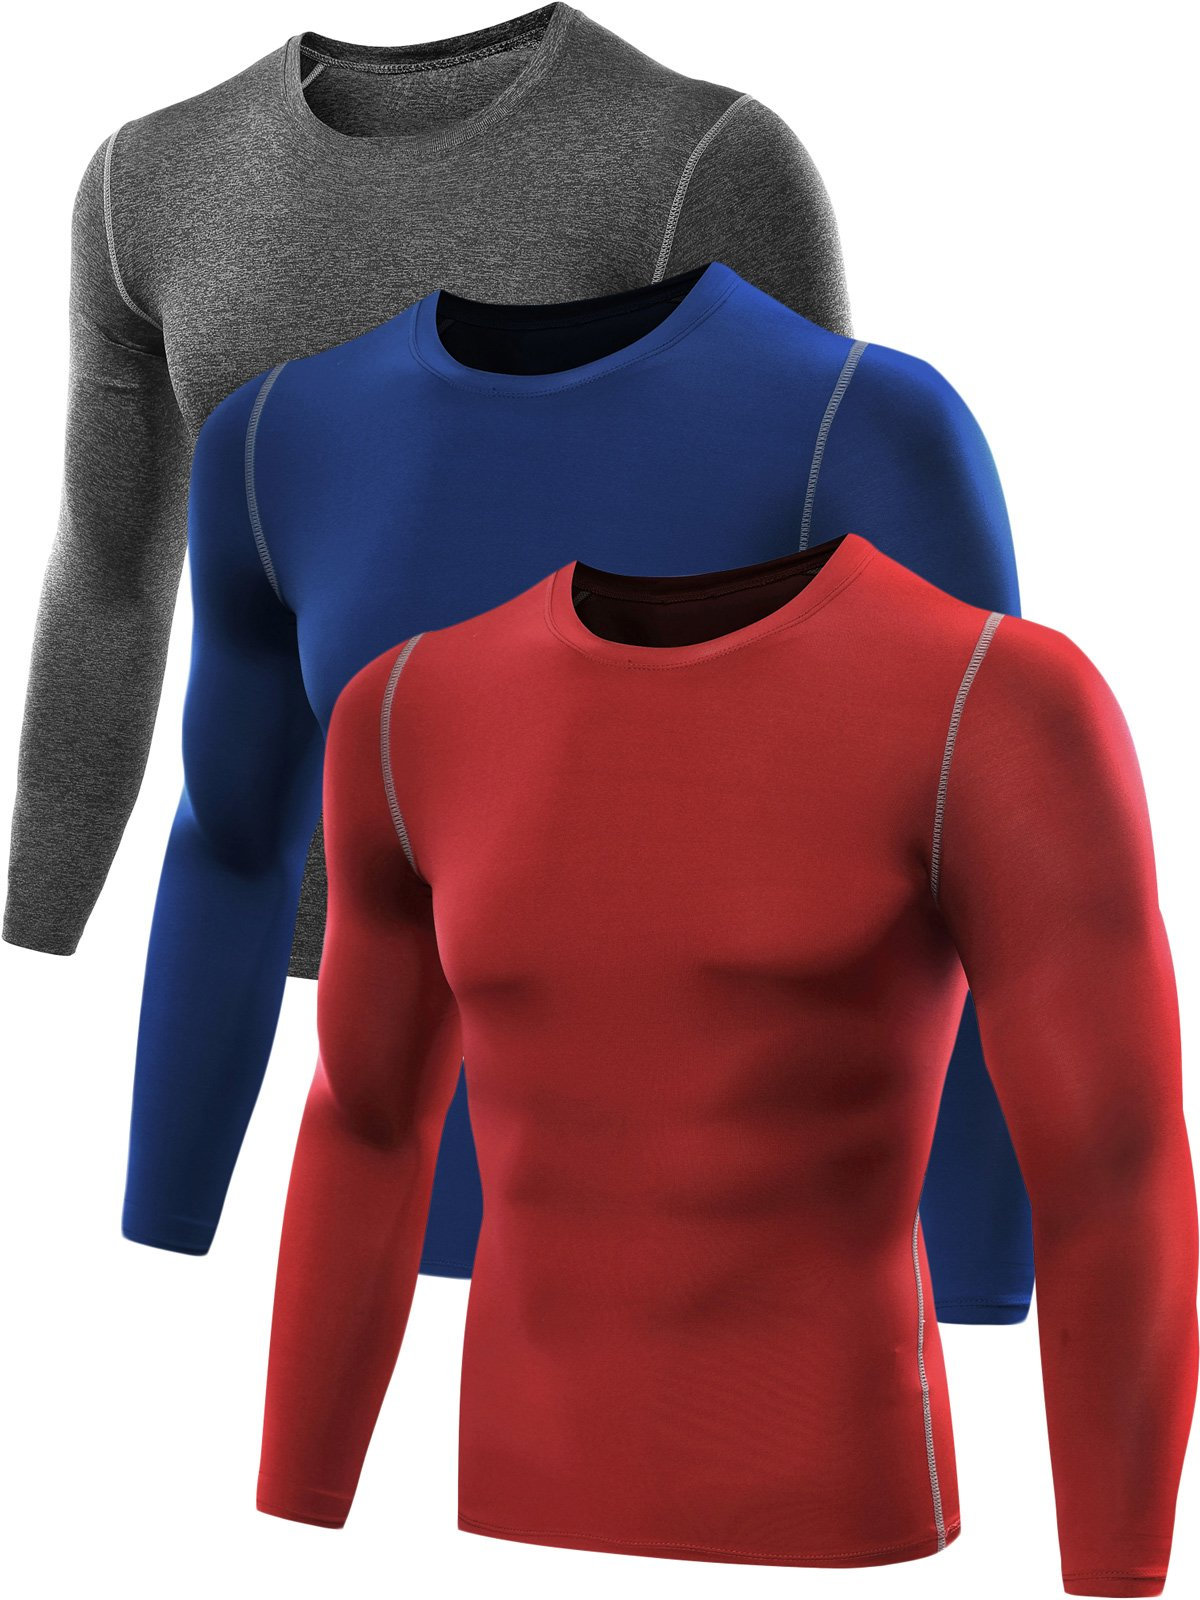 Neleus Men's 3 Pack Athletic Compression Sport Running T Shirt Long Sleeve Base Layer,Grey,Blue,Red,US S,EU M